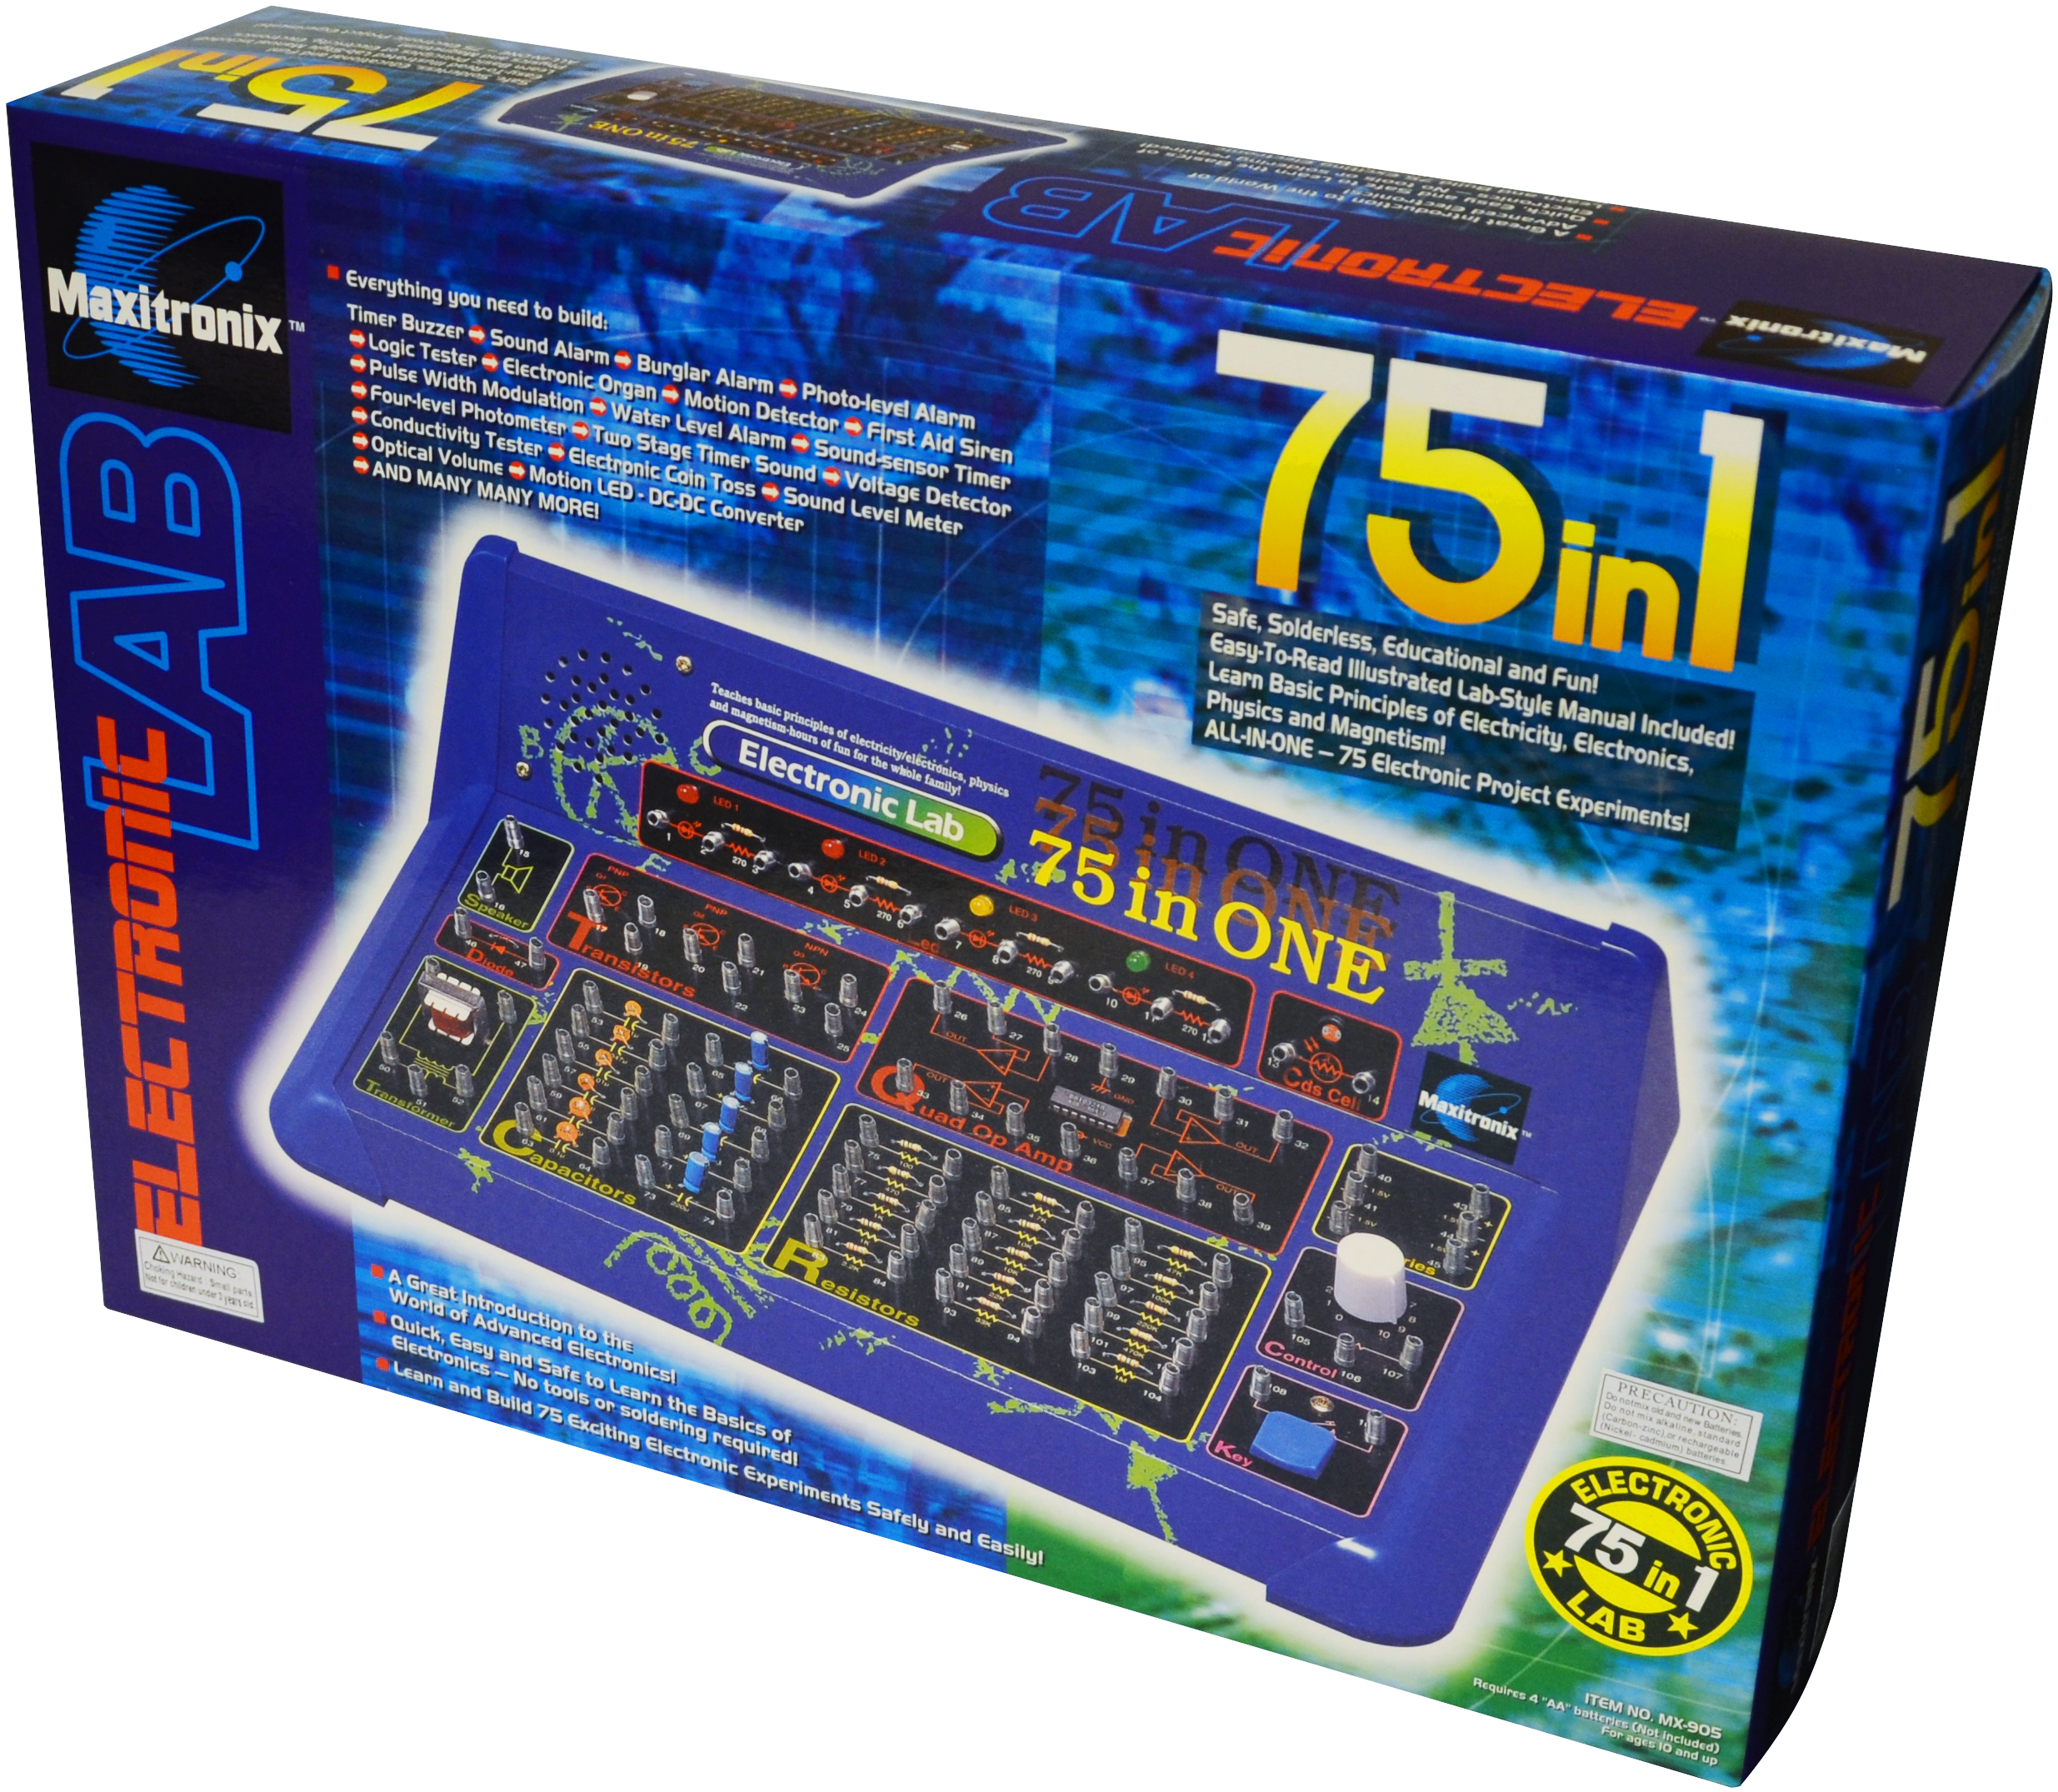 75-in-1 Electronic Project Lab- Elenco Electronics